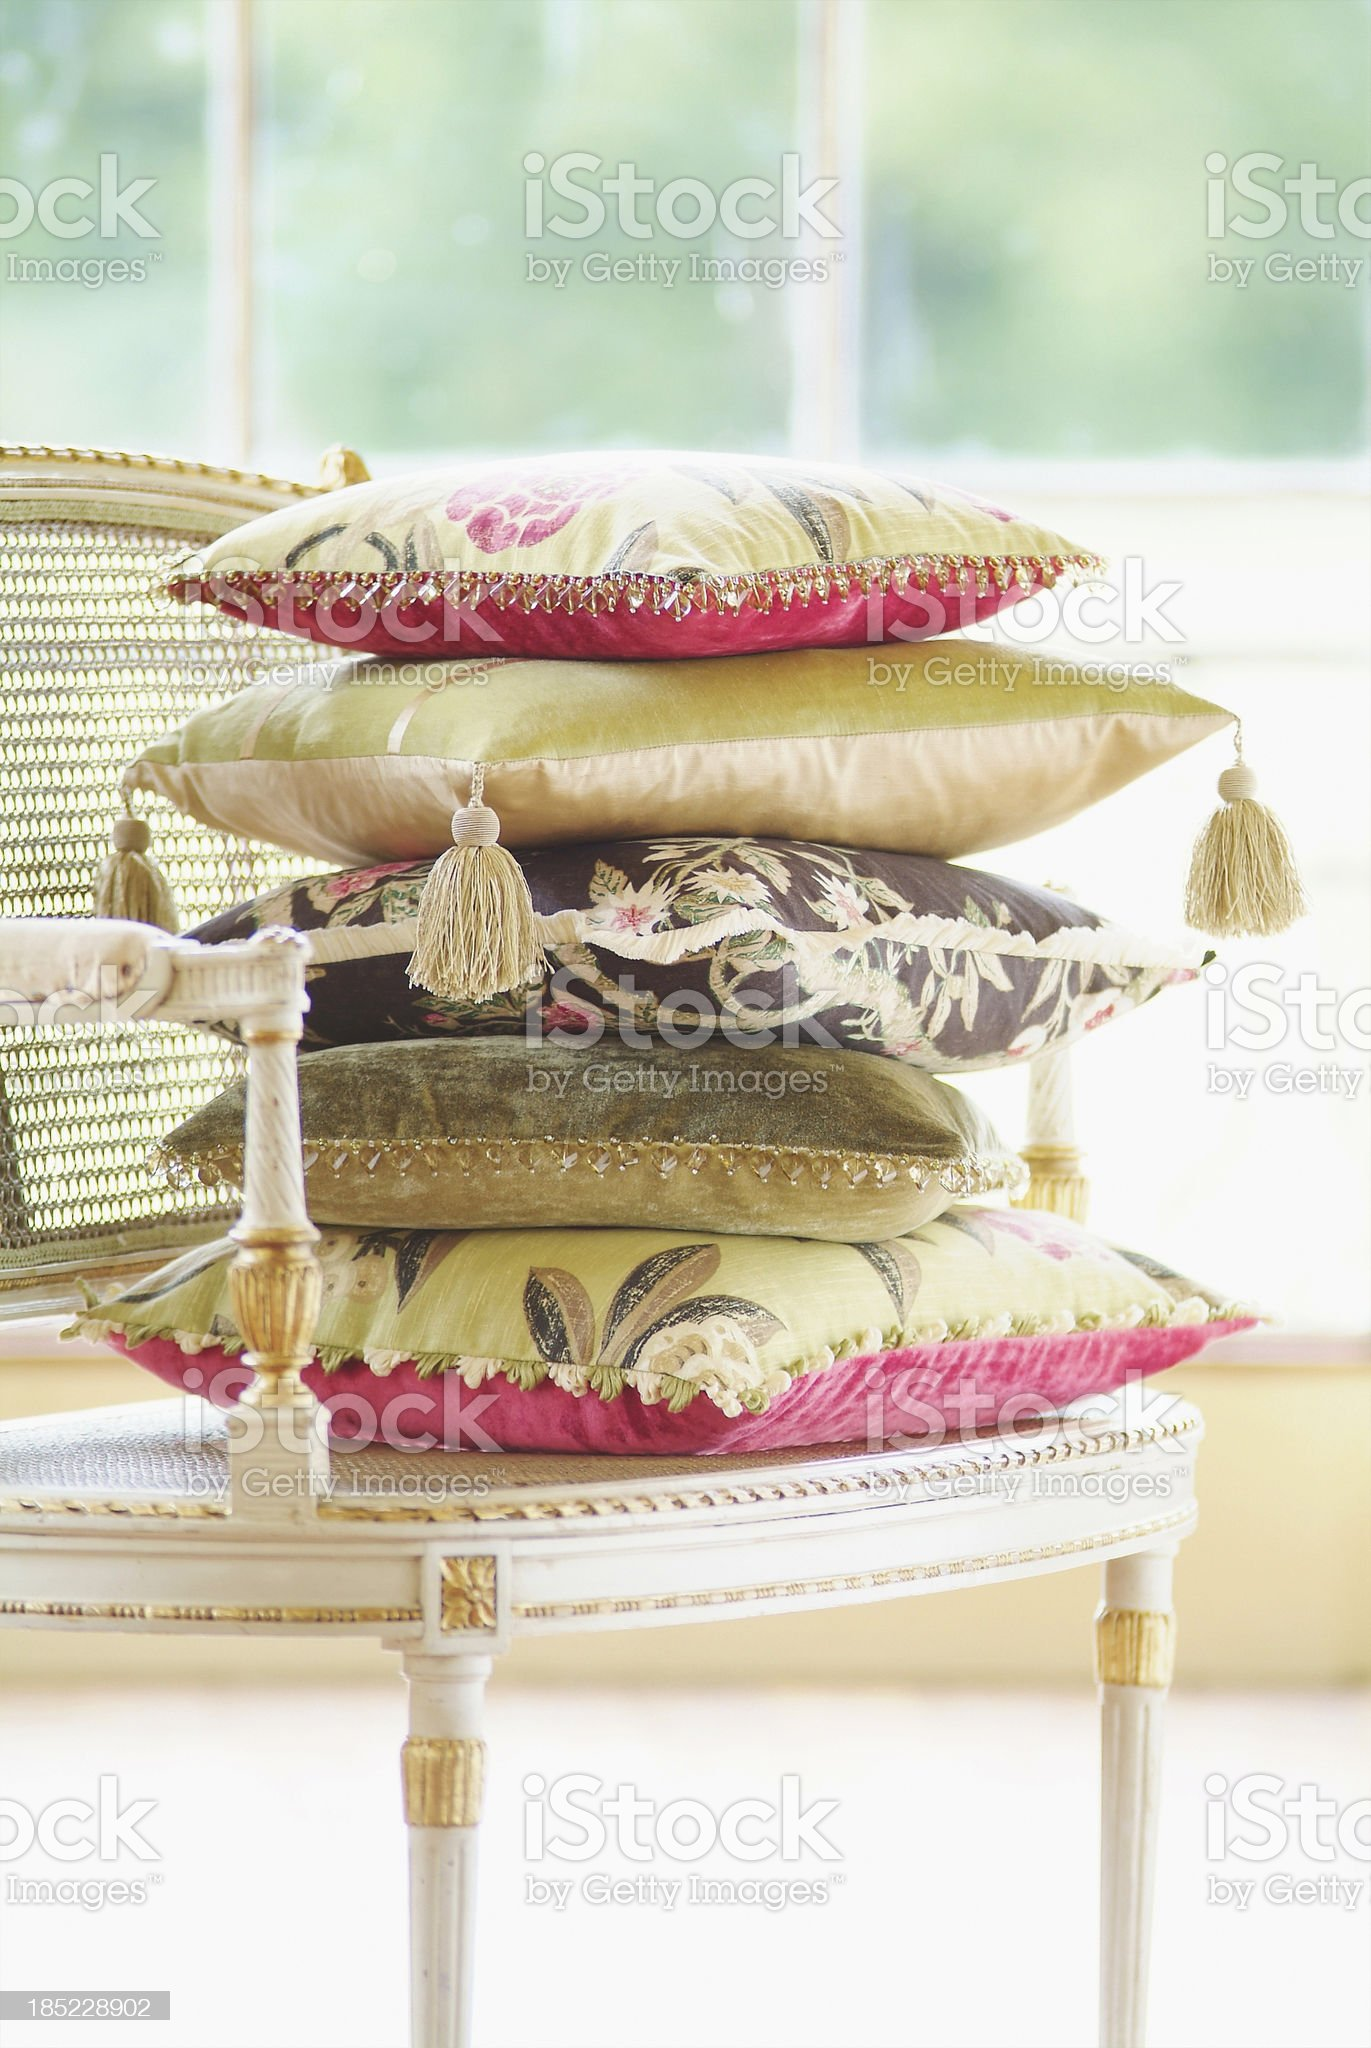 Cushions pilled on stylish chair in bright room. royalty-free stock photo